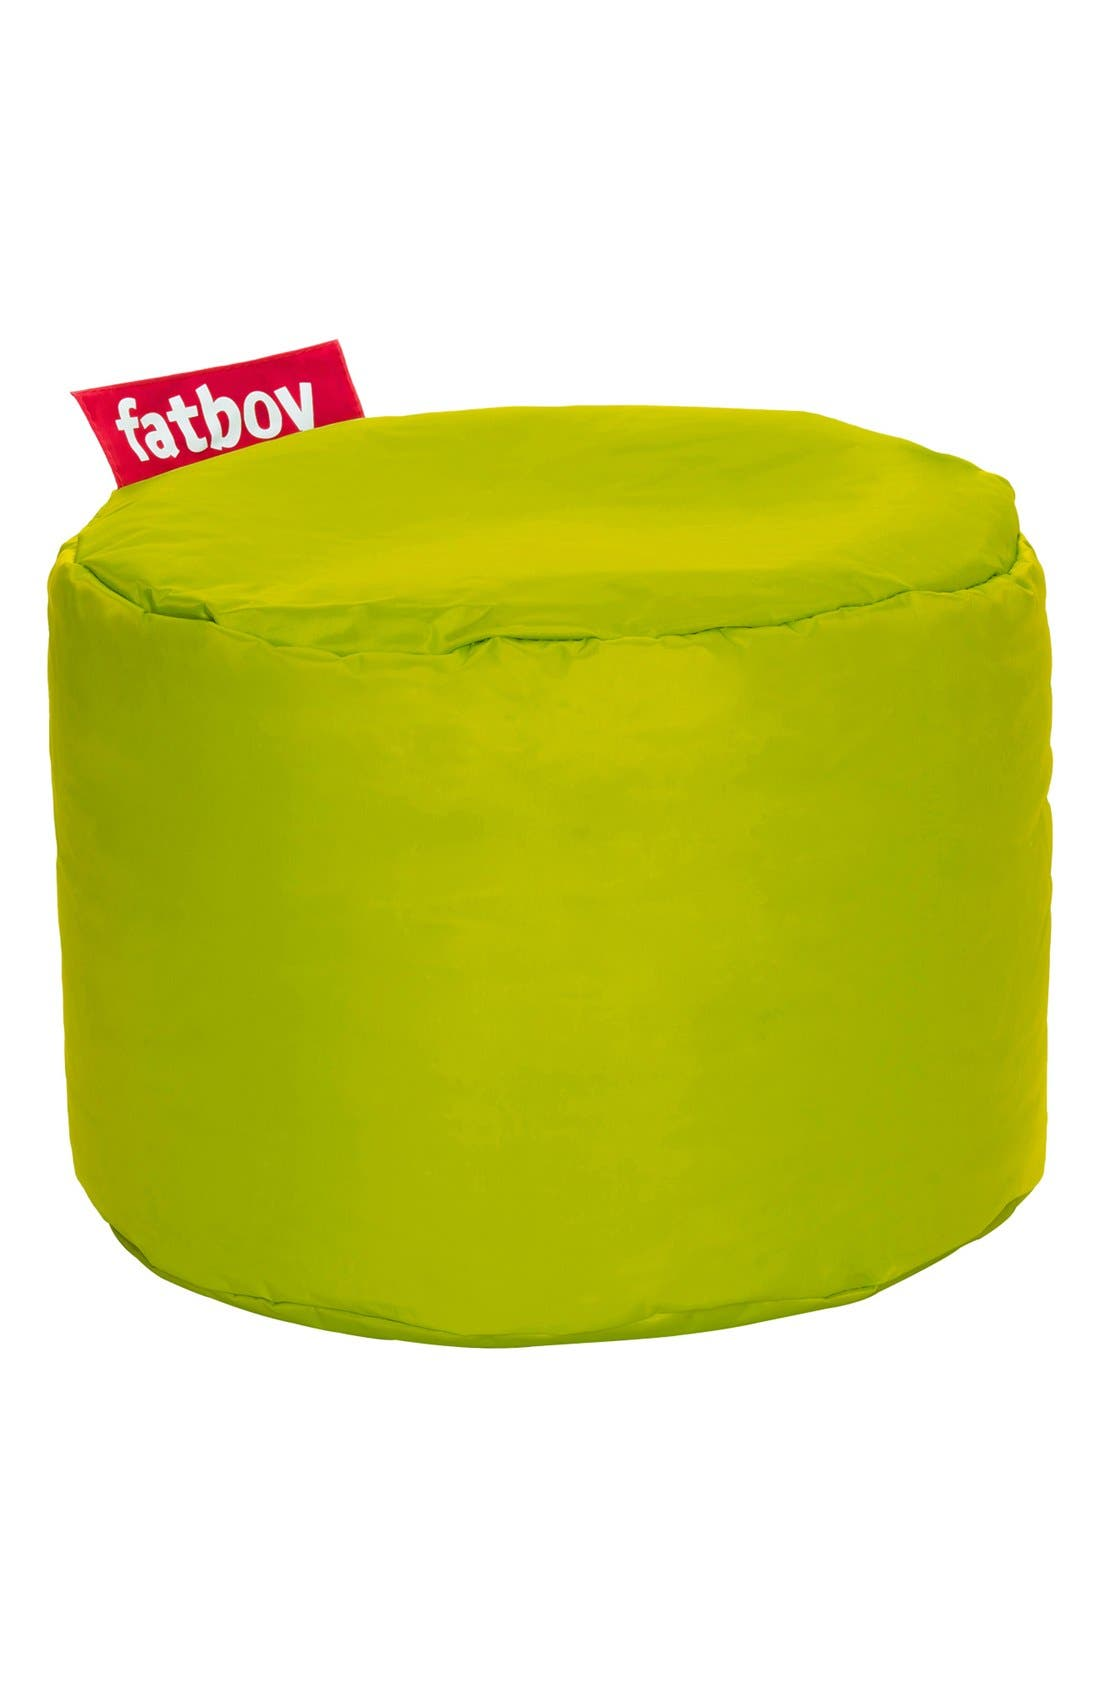 Fatboy 'Point' Ottoman